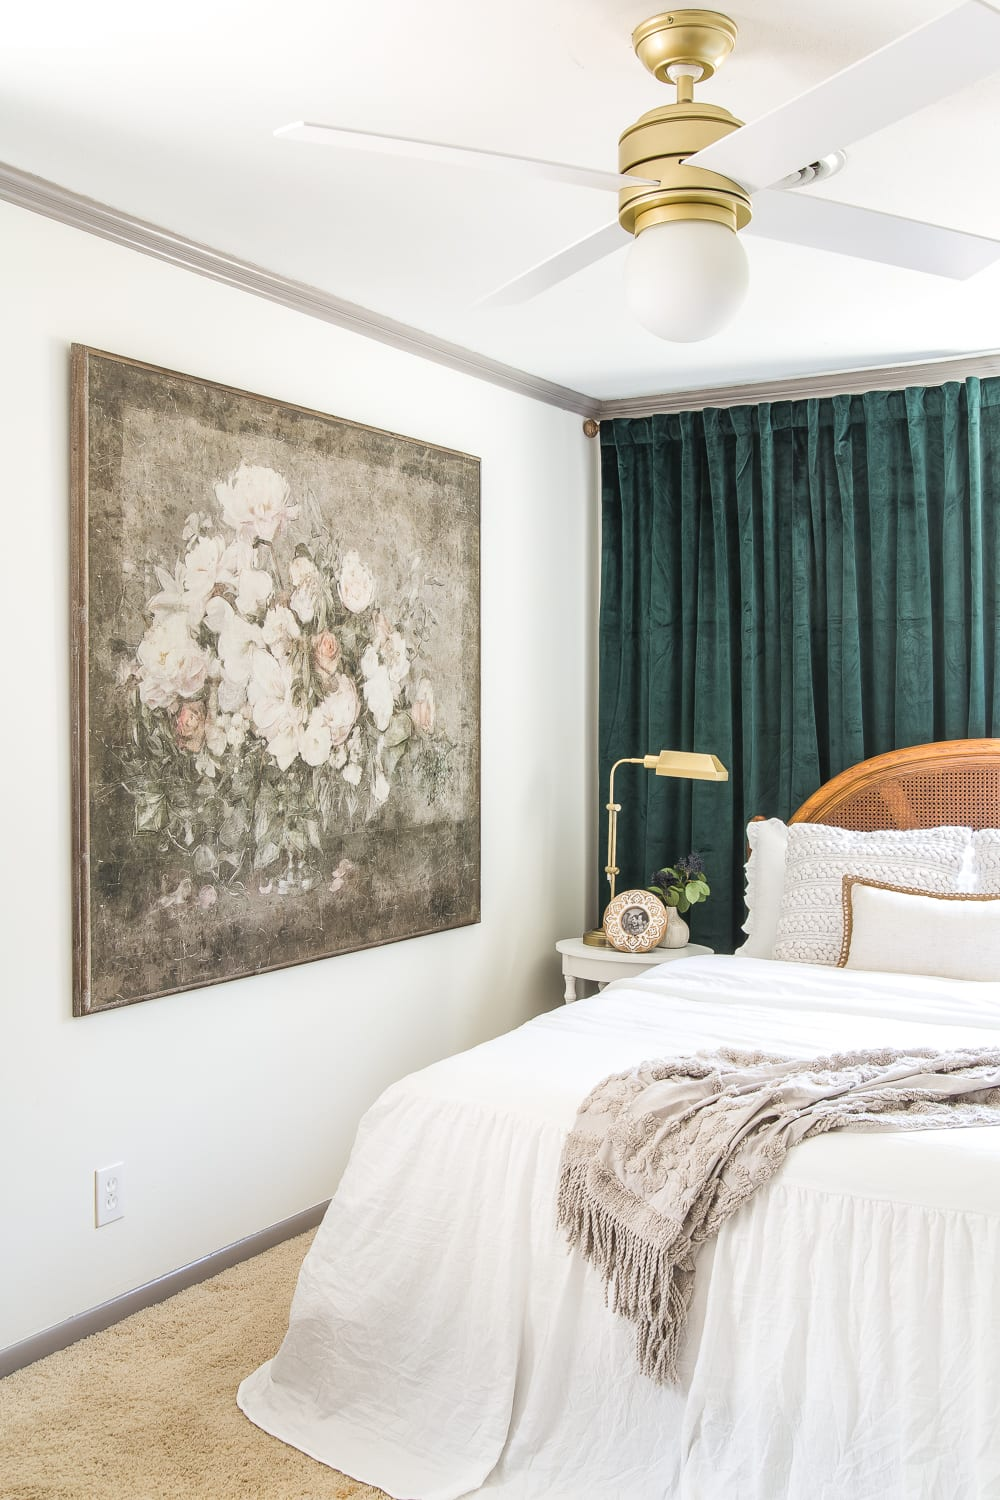 Vintage chic statement art in a guest bedroom